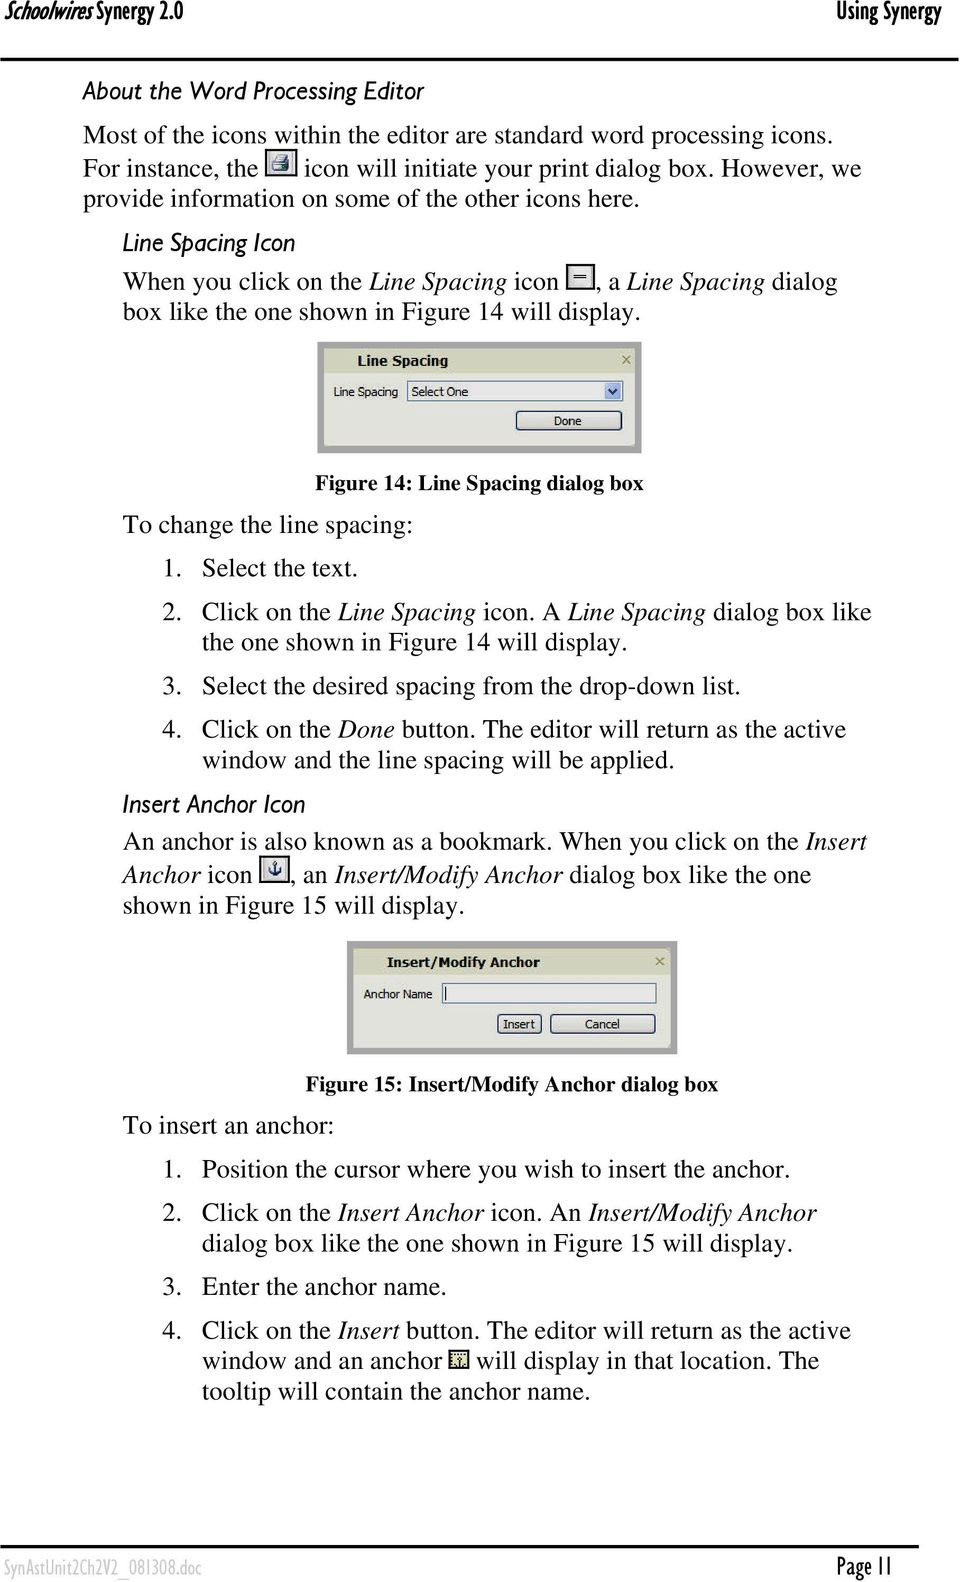 Figure 14: Line Spacing dialog box To change the line spacing: 1. Select the text. 2. Click on the Line Spacing icon. A Line Spacing dialog box like the one shown in Figure 14 will display. 3.